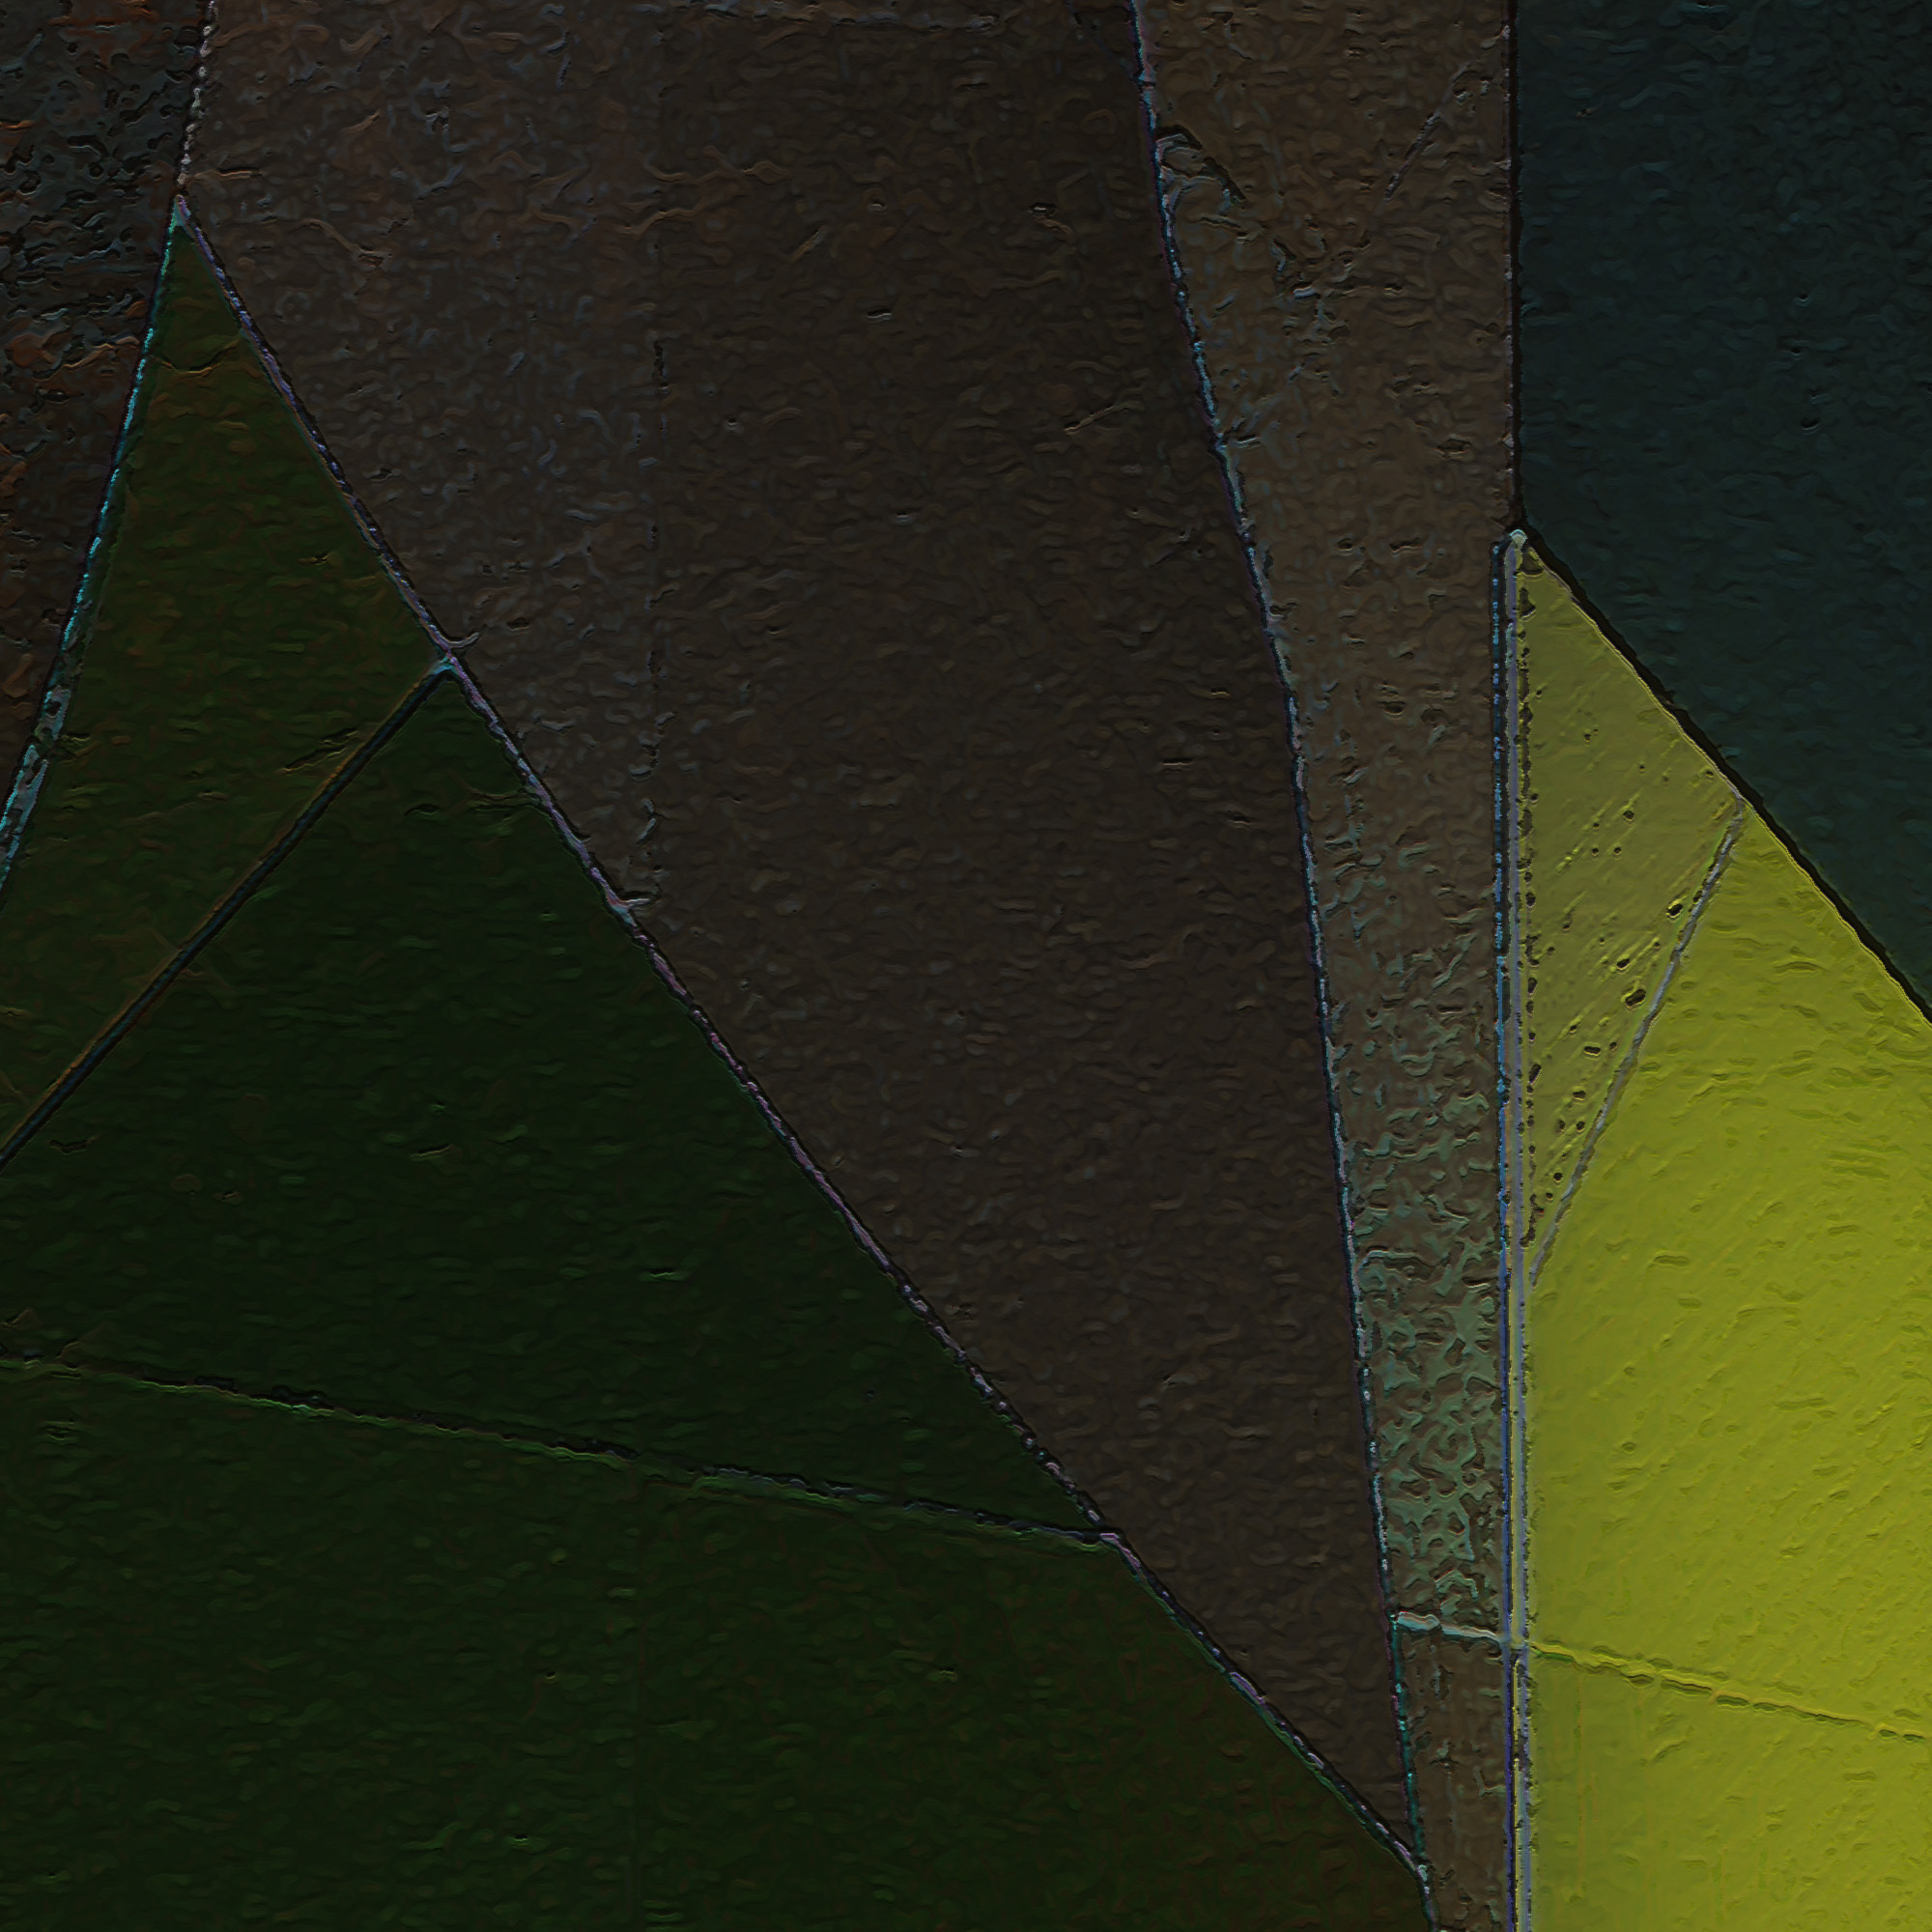 190605_Dimensional_Intersection_detail3.jpg